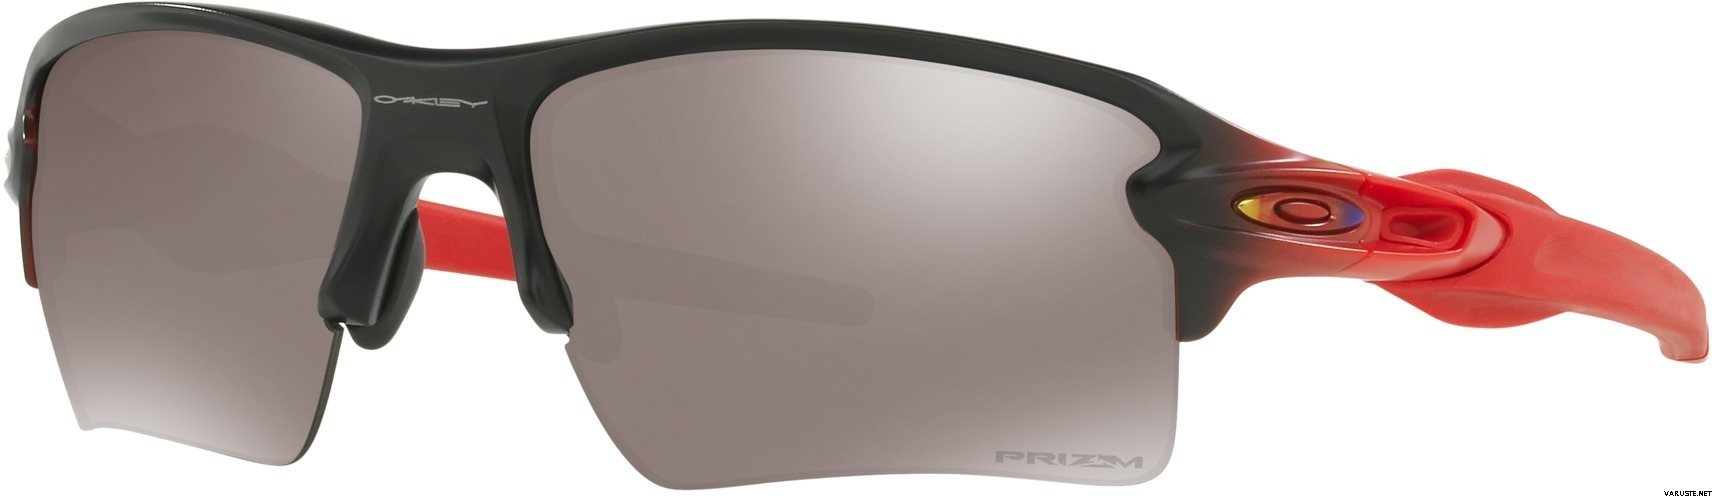 1aec7665524 Oakley Flak 2.0 XL Ruby Fade w  Prizm Black Polarized